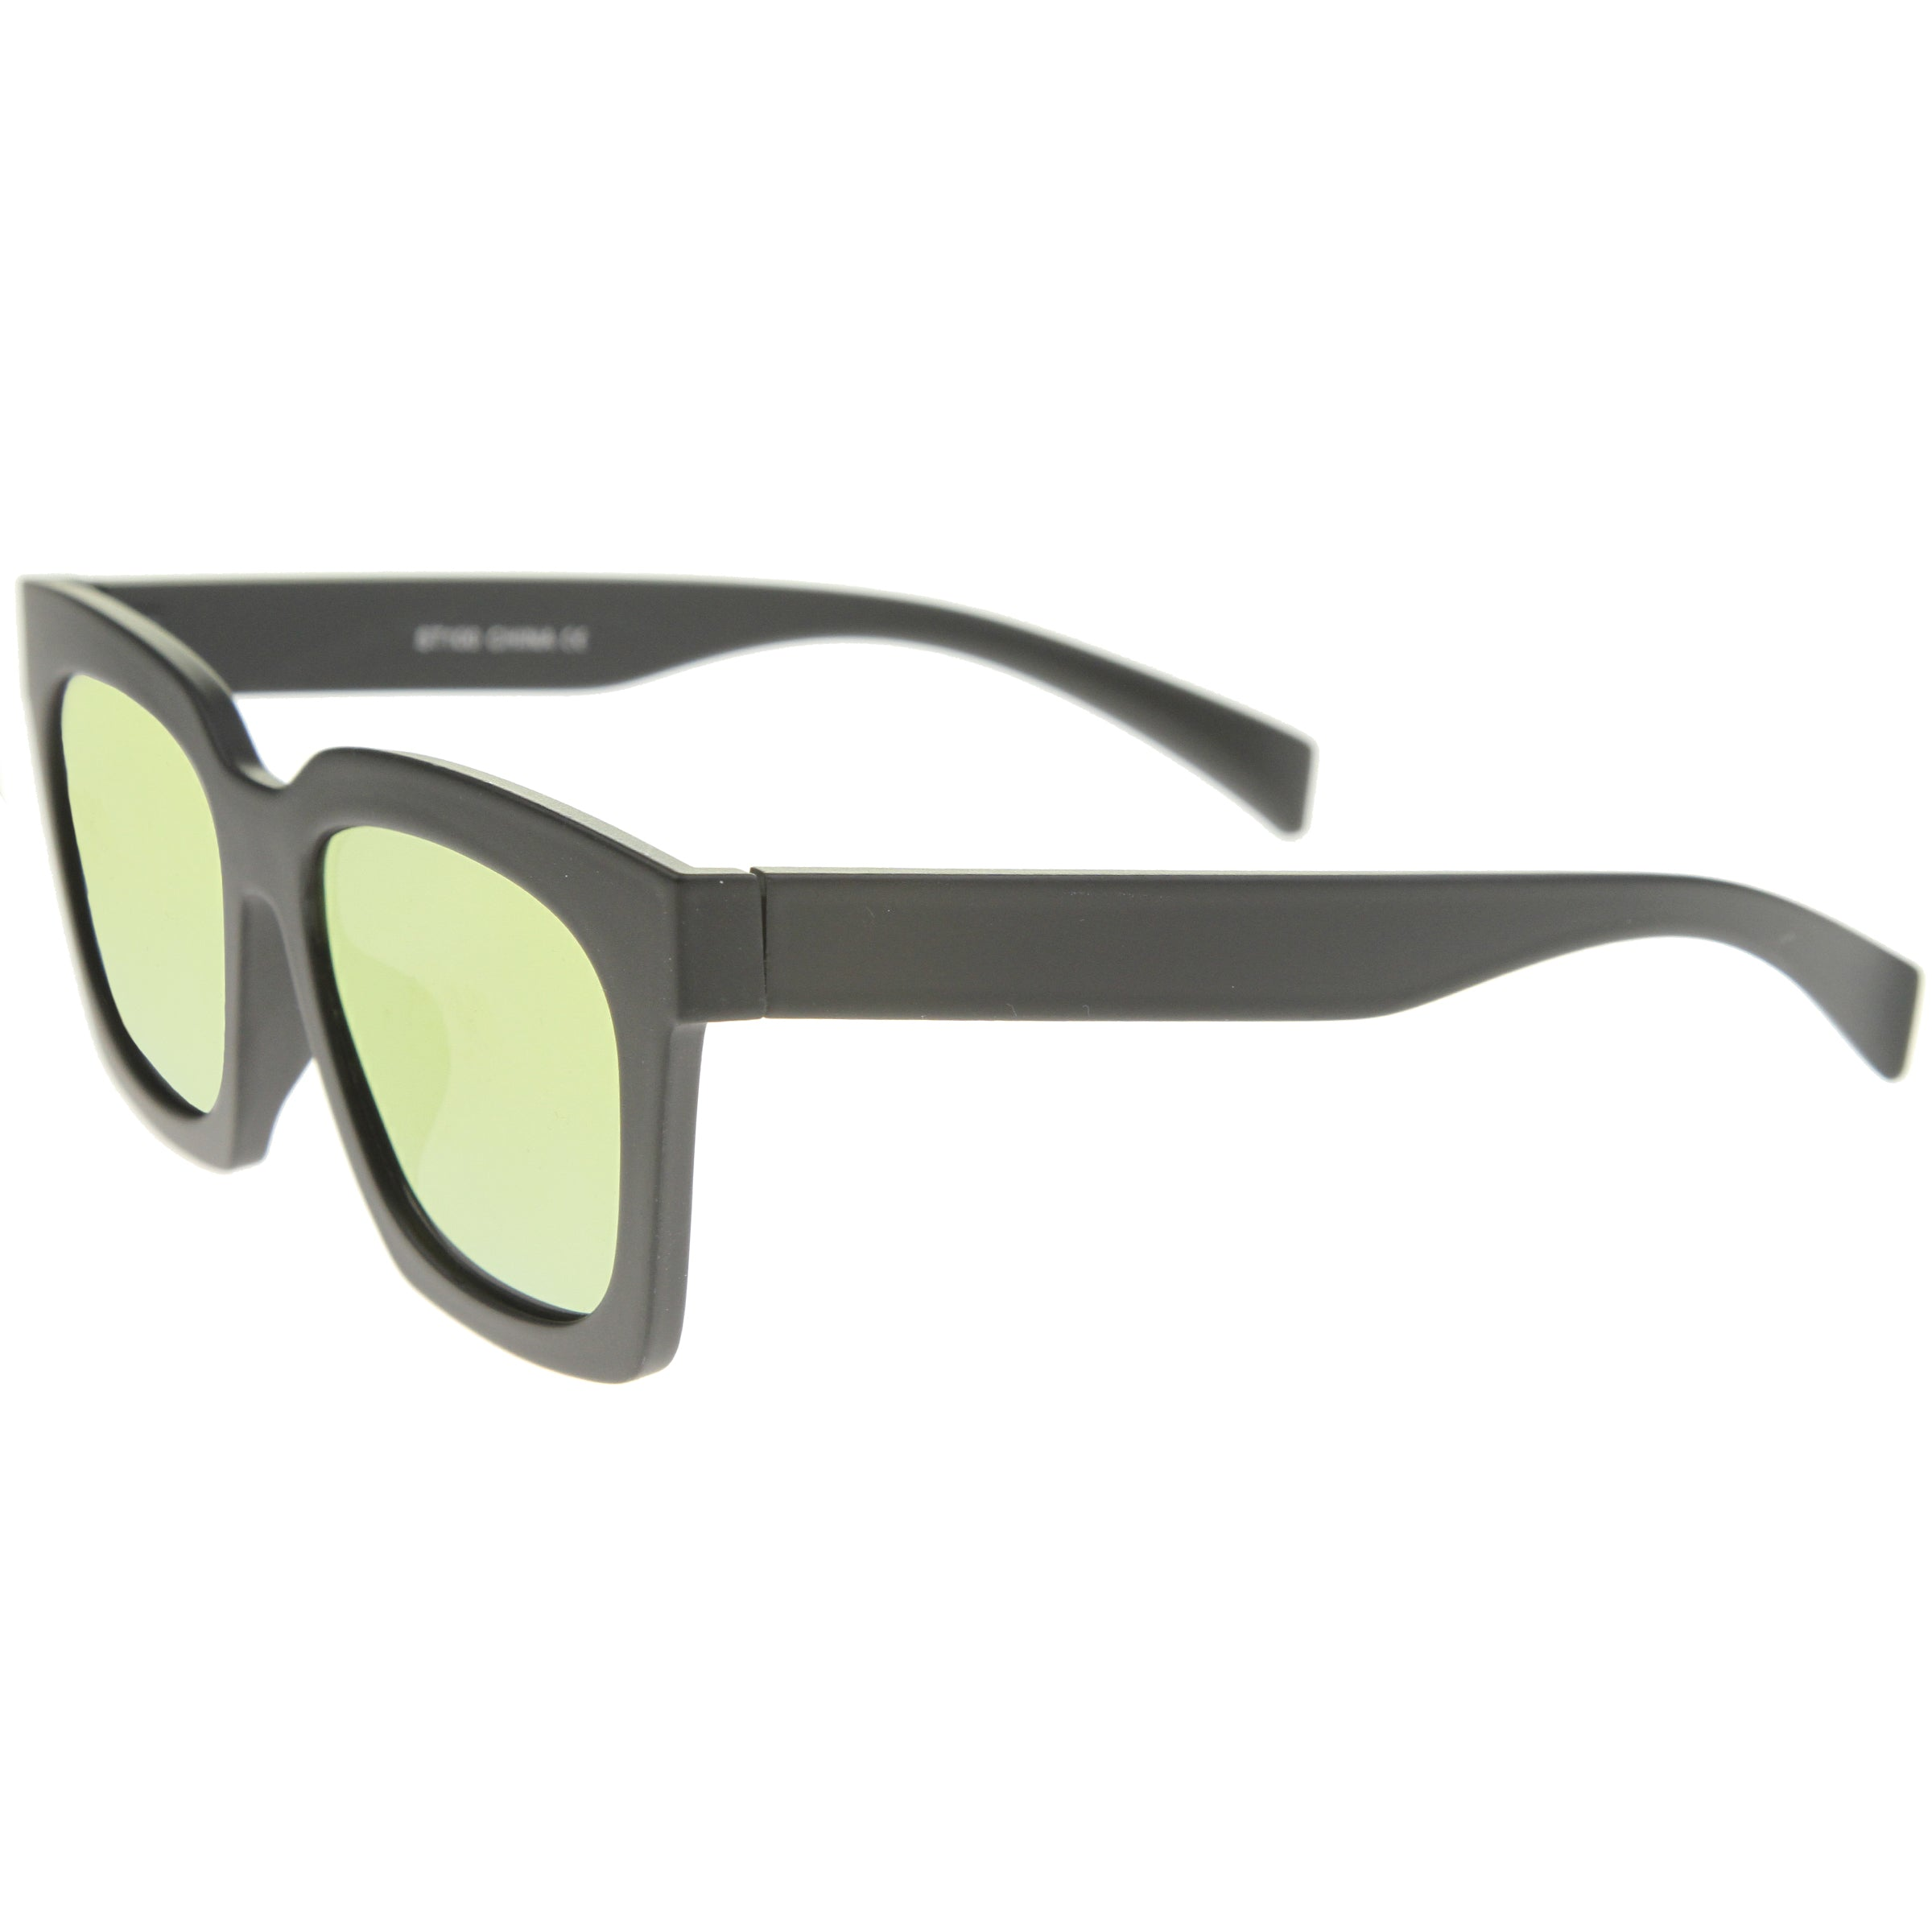 Retro Matte Horn Rimmed Colored Mirror Flat Lens Oversize Square Sunglasses 54mm - sunglass.la - 11